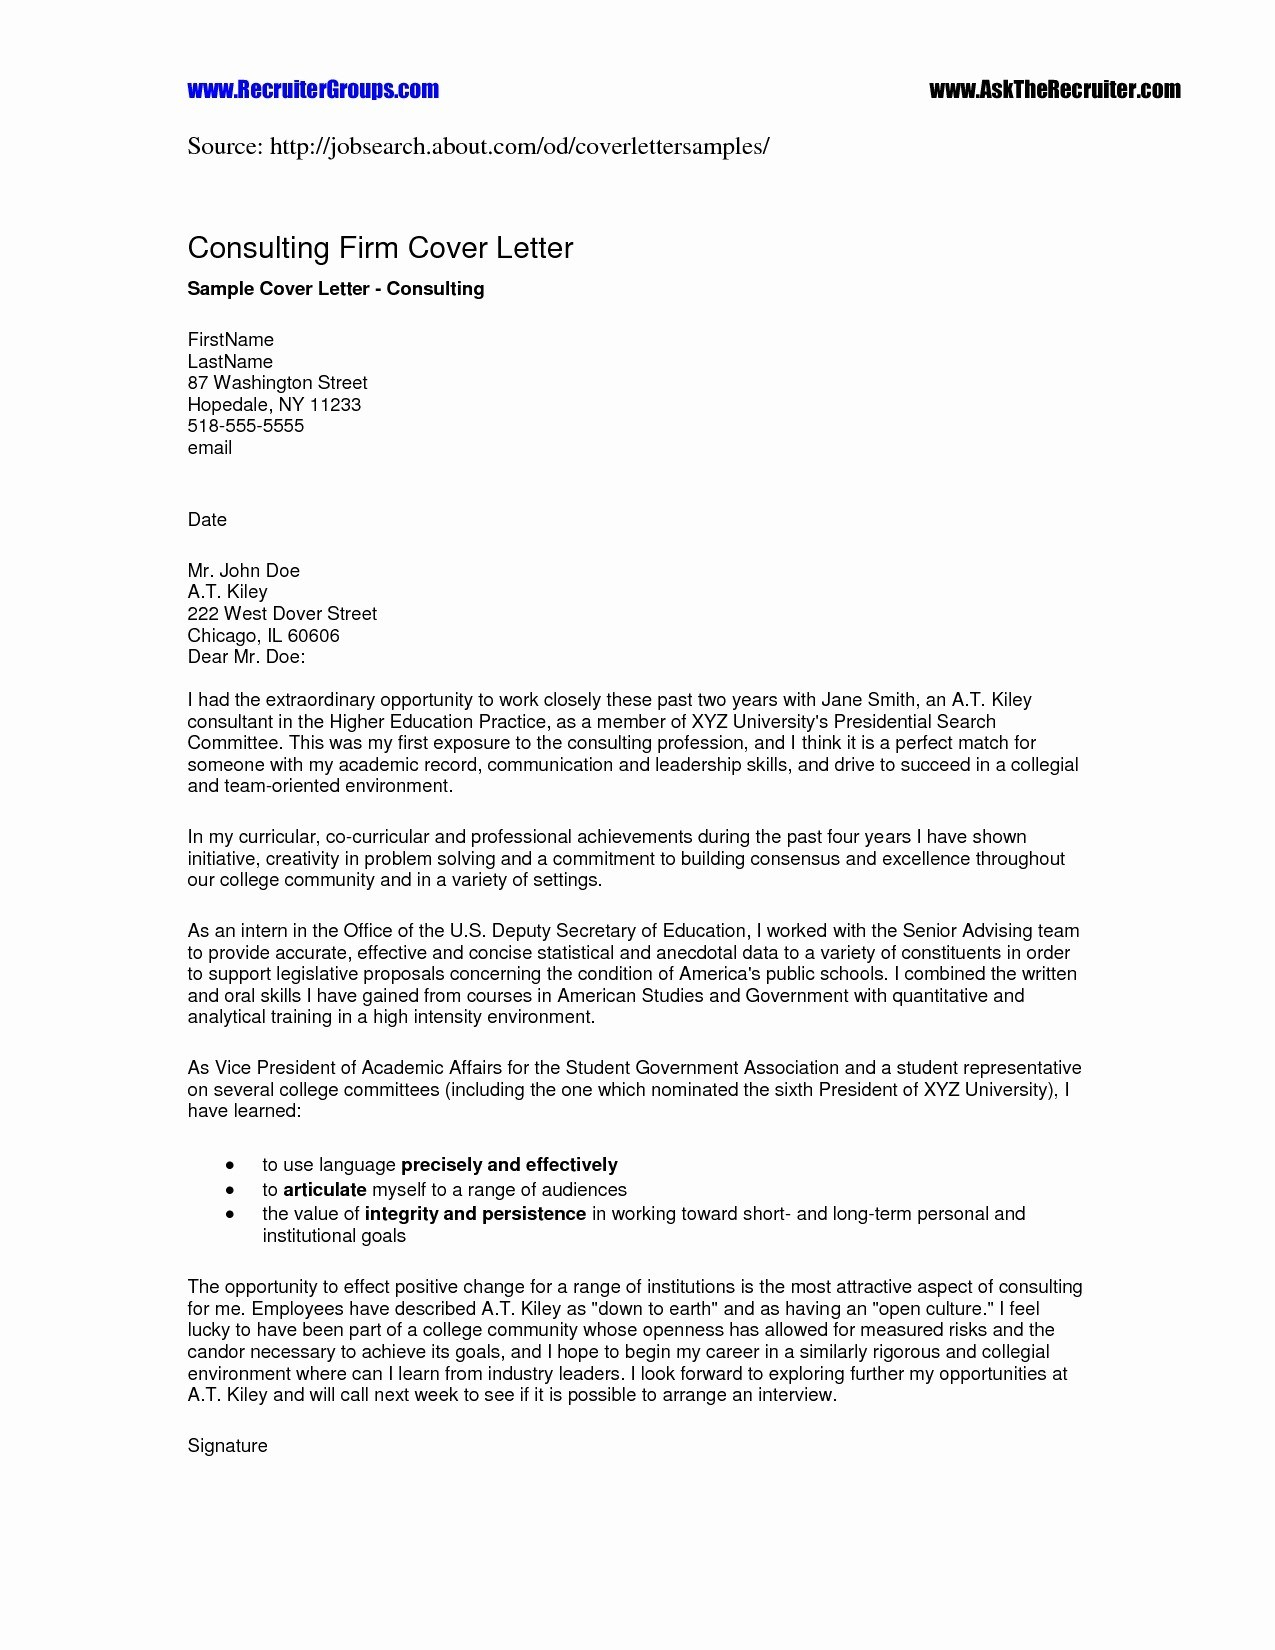 Teacher Cover Letter Template - Resume and Cover Letter Templates Fresh Teacher Cover Letter